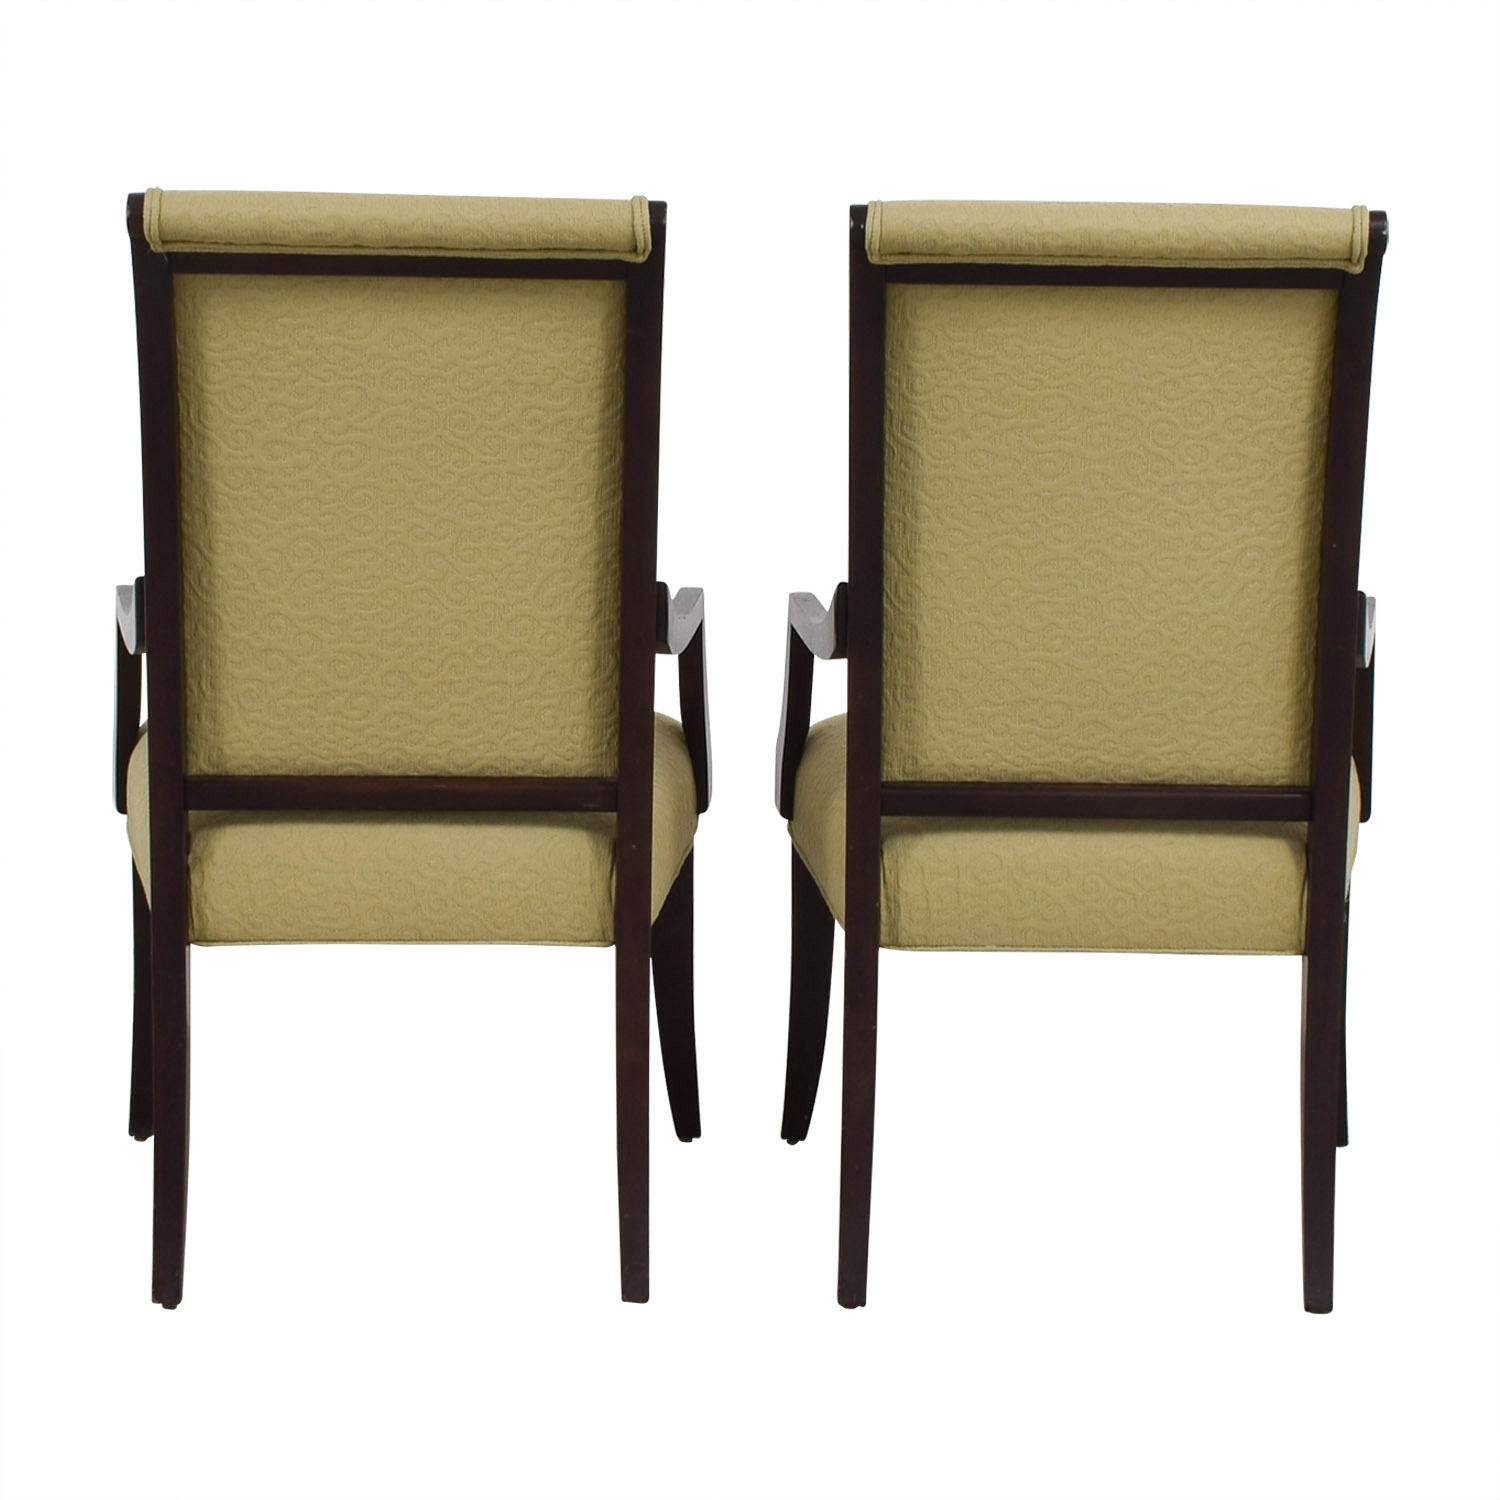 Ethan Allen Ethan Allen Beige Jacquard Upholstered Accent Chairs nyc